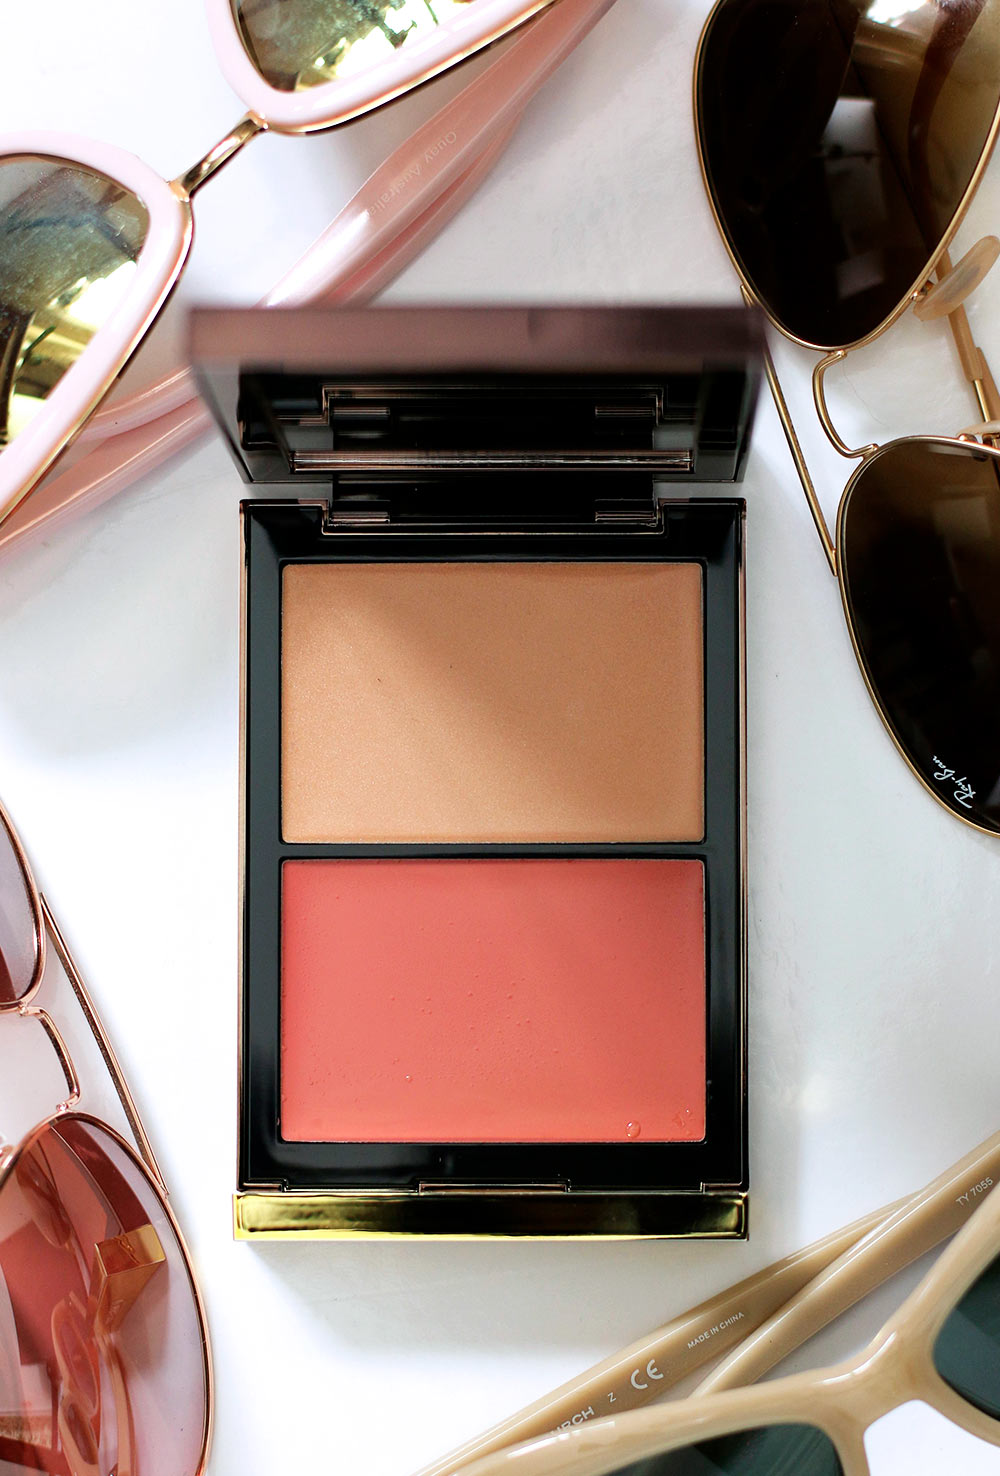 tom ford shade illuminate cheeks scintillate